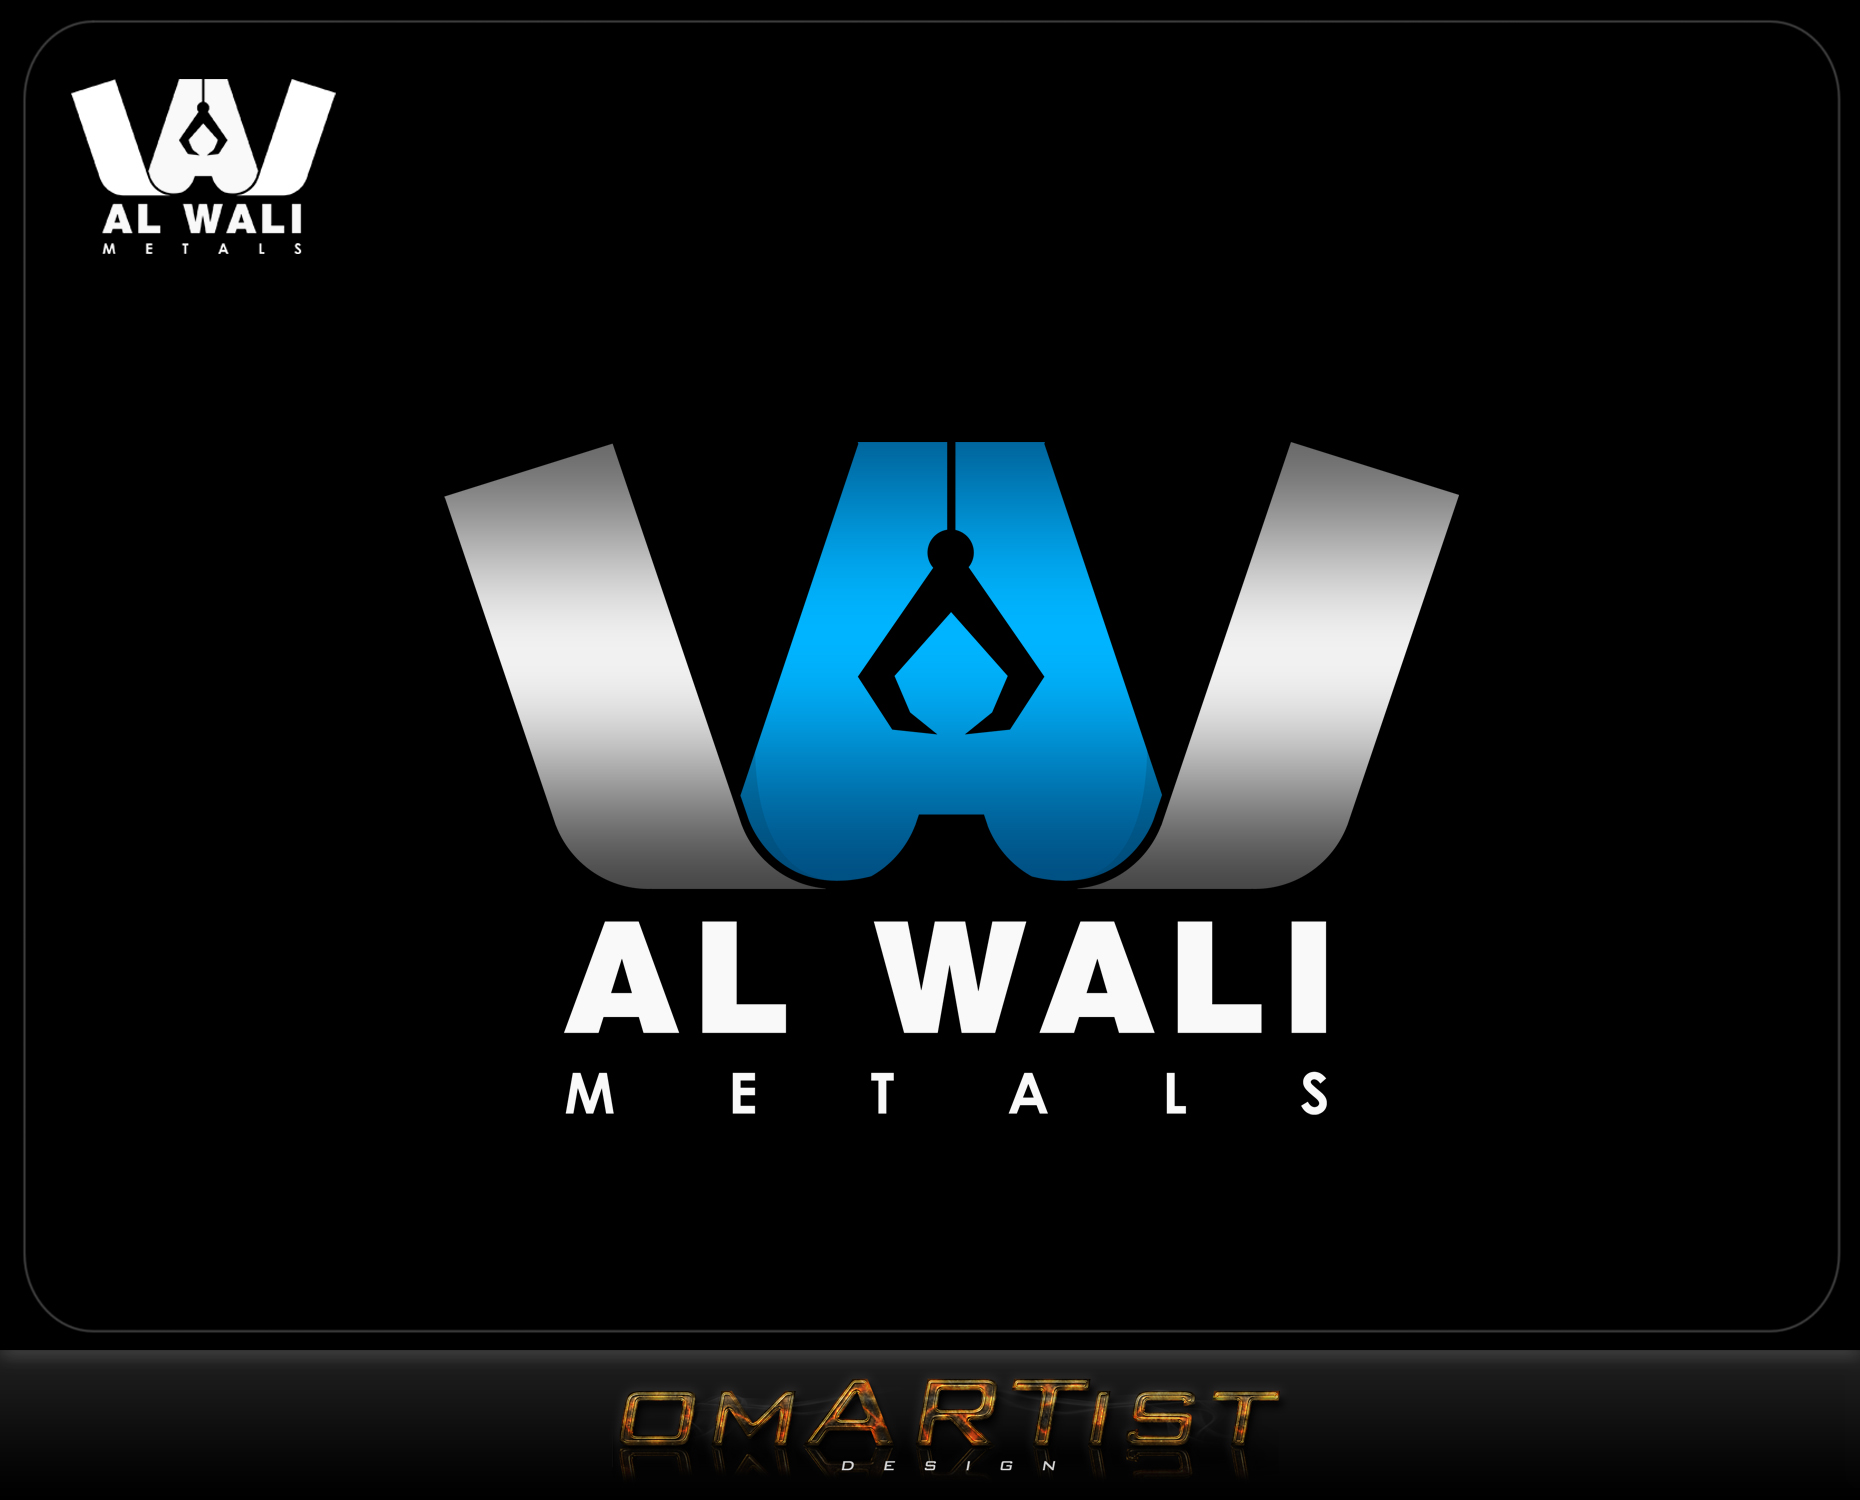 Logo Design by omARTist - Entry No. 106 in the Logo Design Contest Inspiring Logo Design for Al Wali Metals.